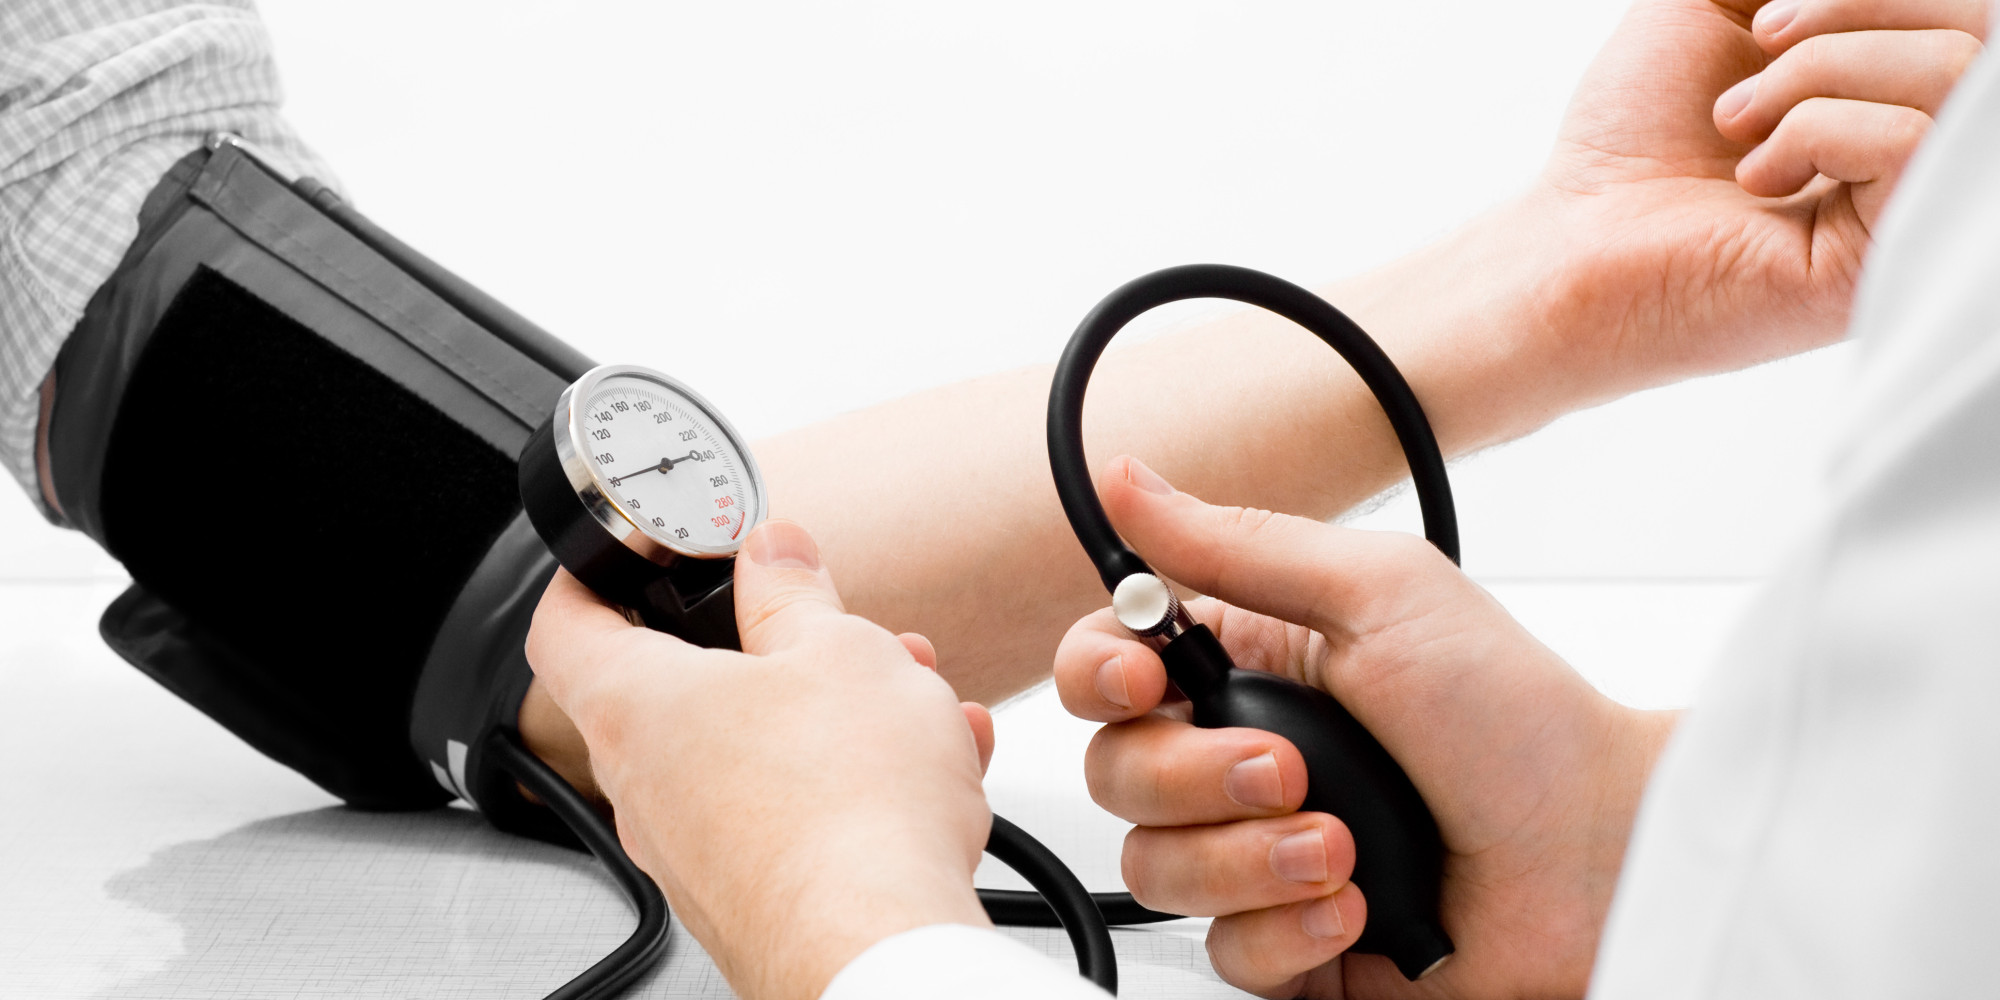 Individuals with isolated systolic hypertension exhibit systolic blood pressure of 140 or higher, but a normal diastolic pressure (lower reading) of around 80.